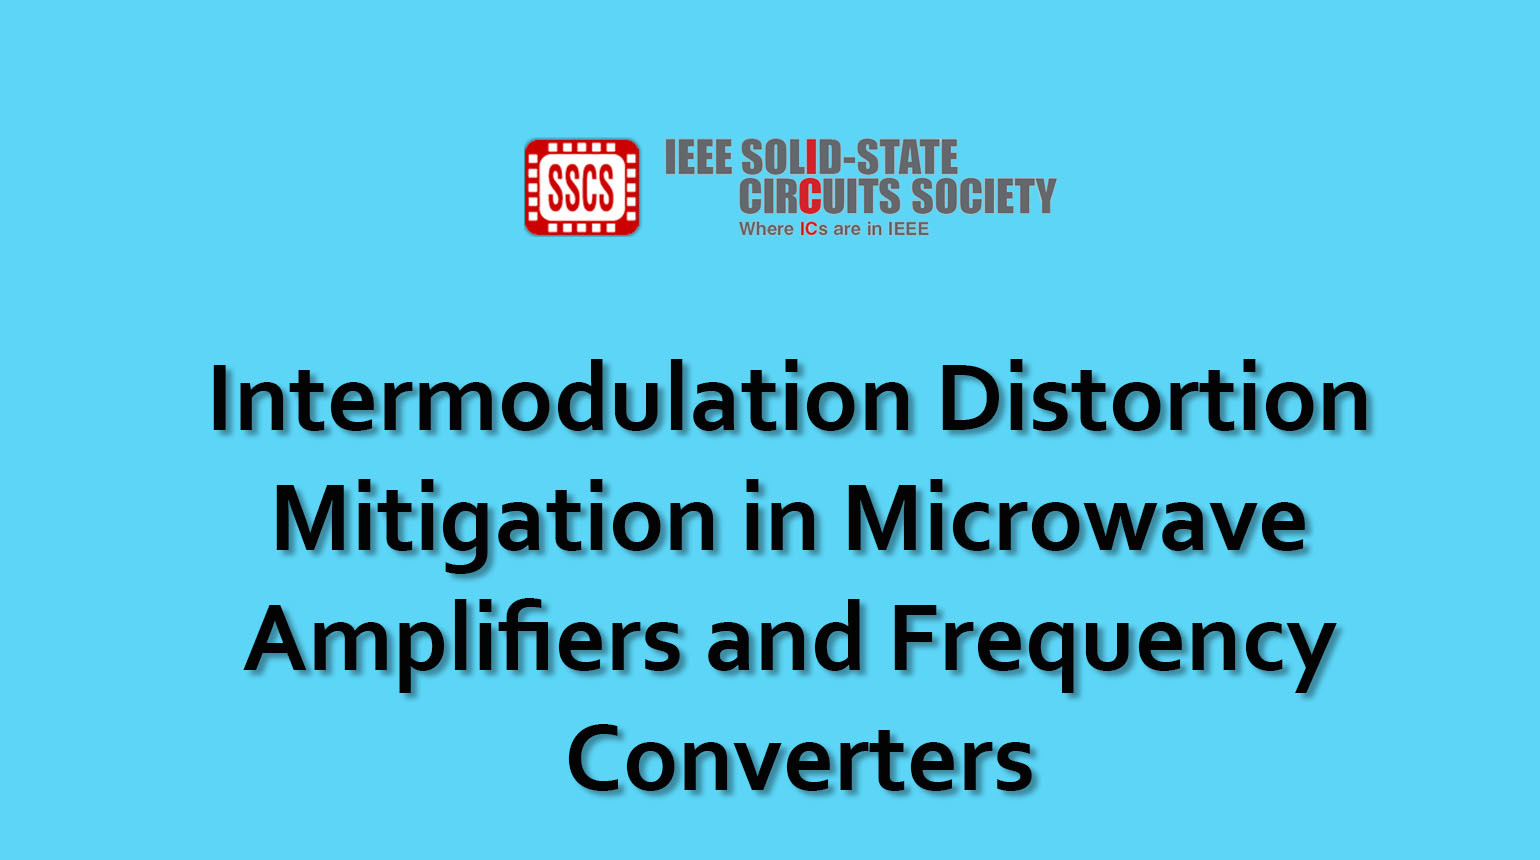 Intermodulation Distortion Mitigation in Microwave Amplifiers and Frequency Converters